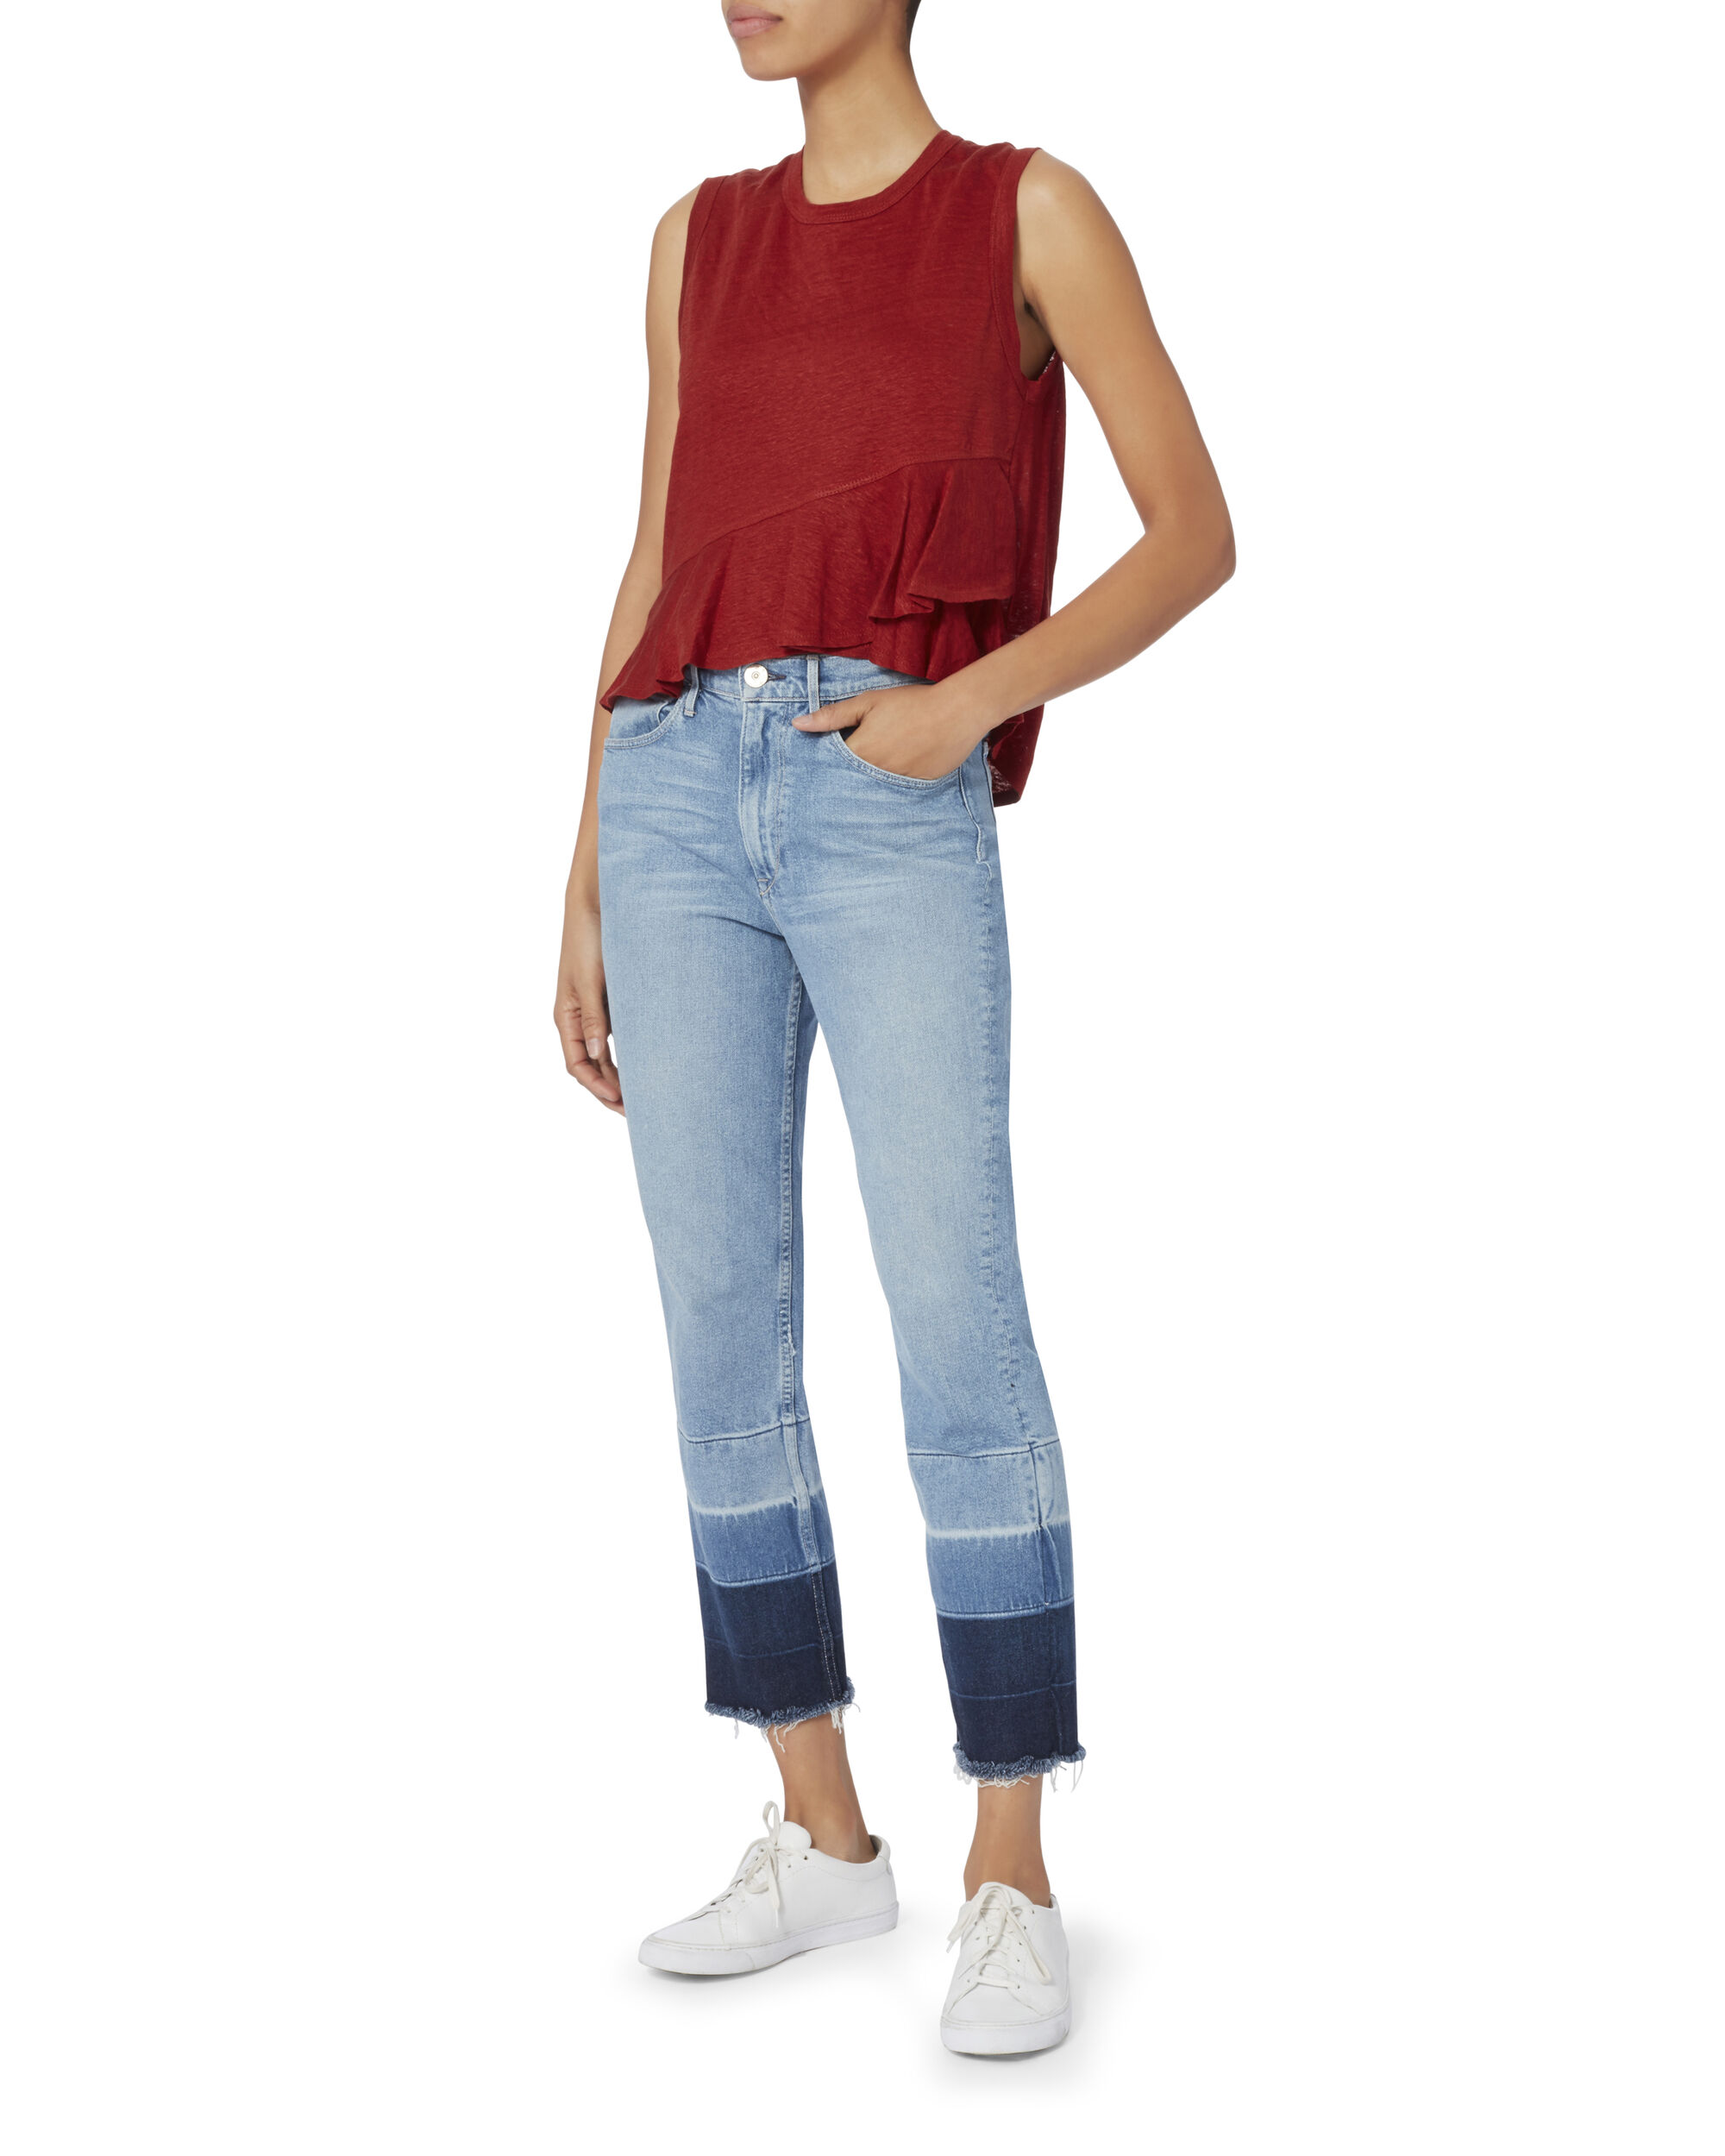 Braxton Ruffle Front Tank, RED, hi-res